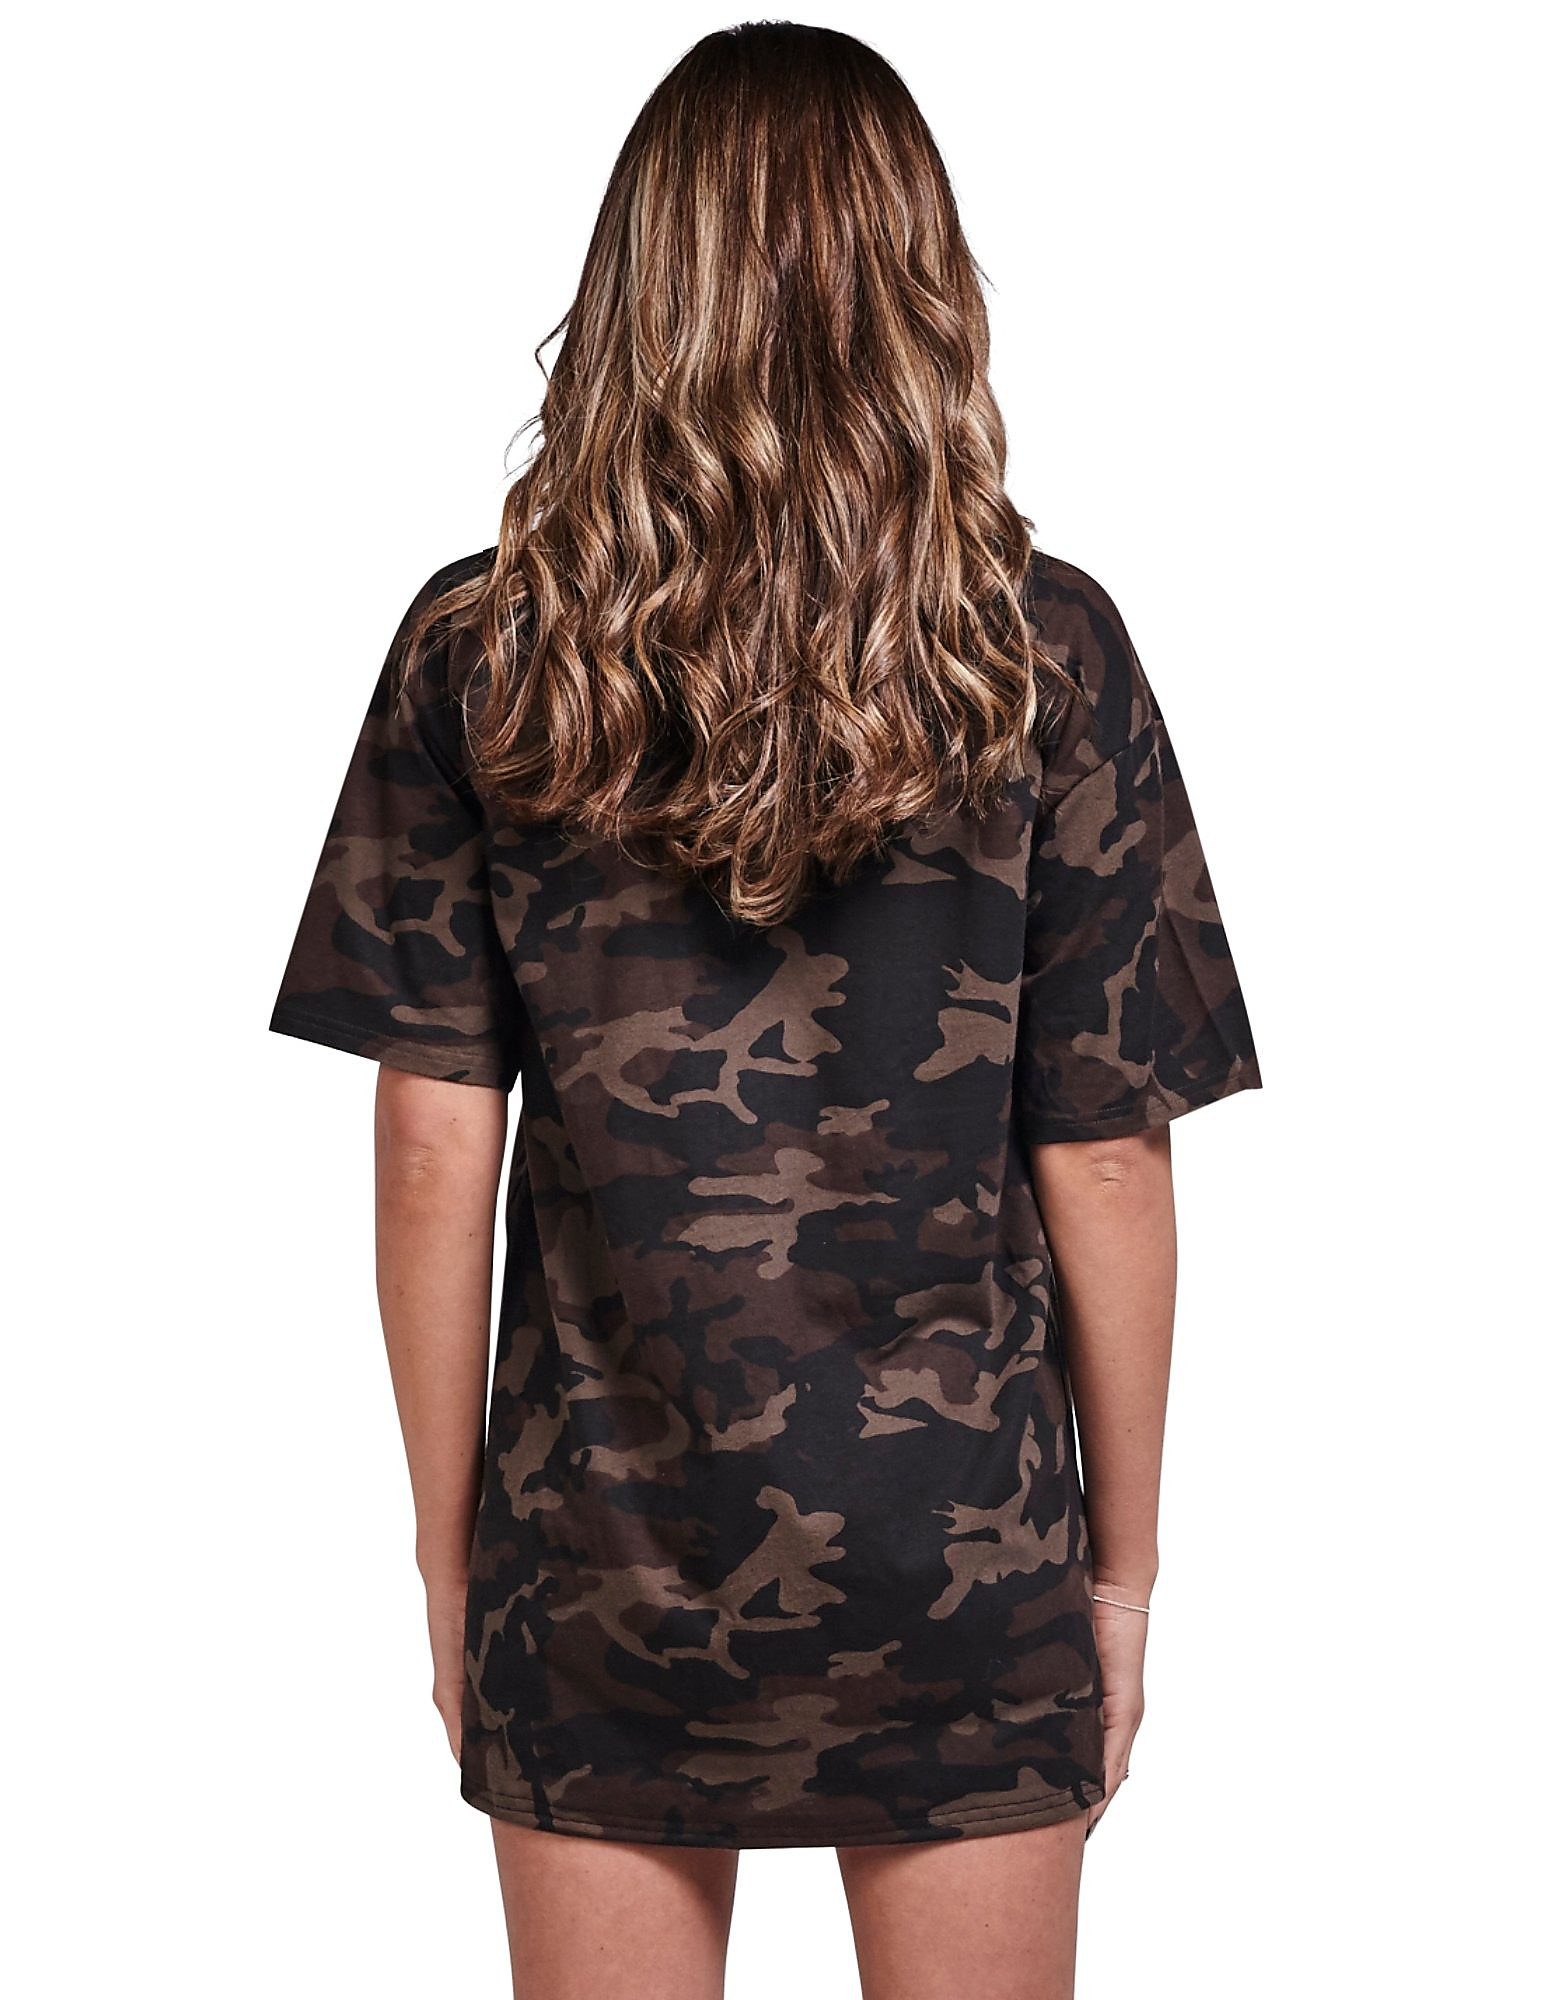 SikSilk Camo T-Shirt Dress